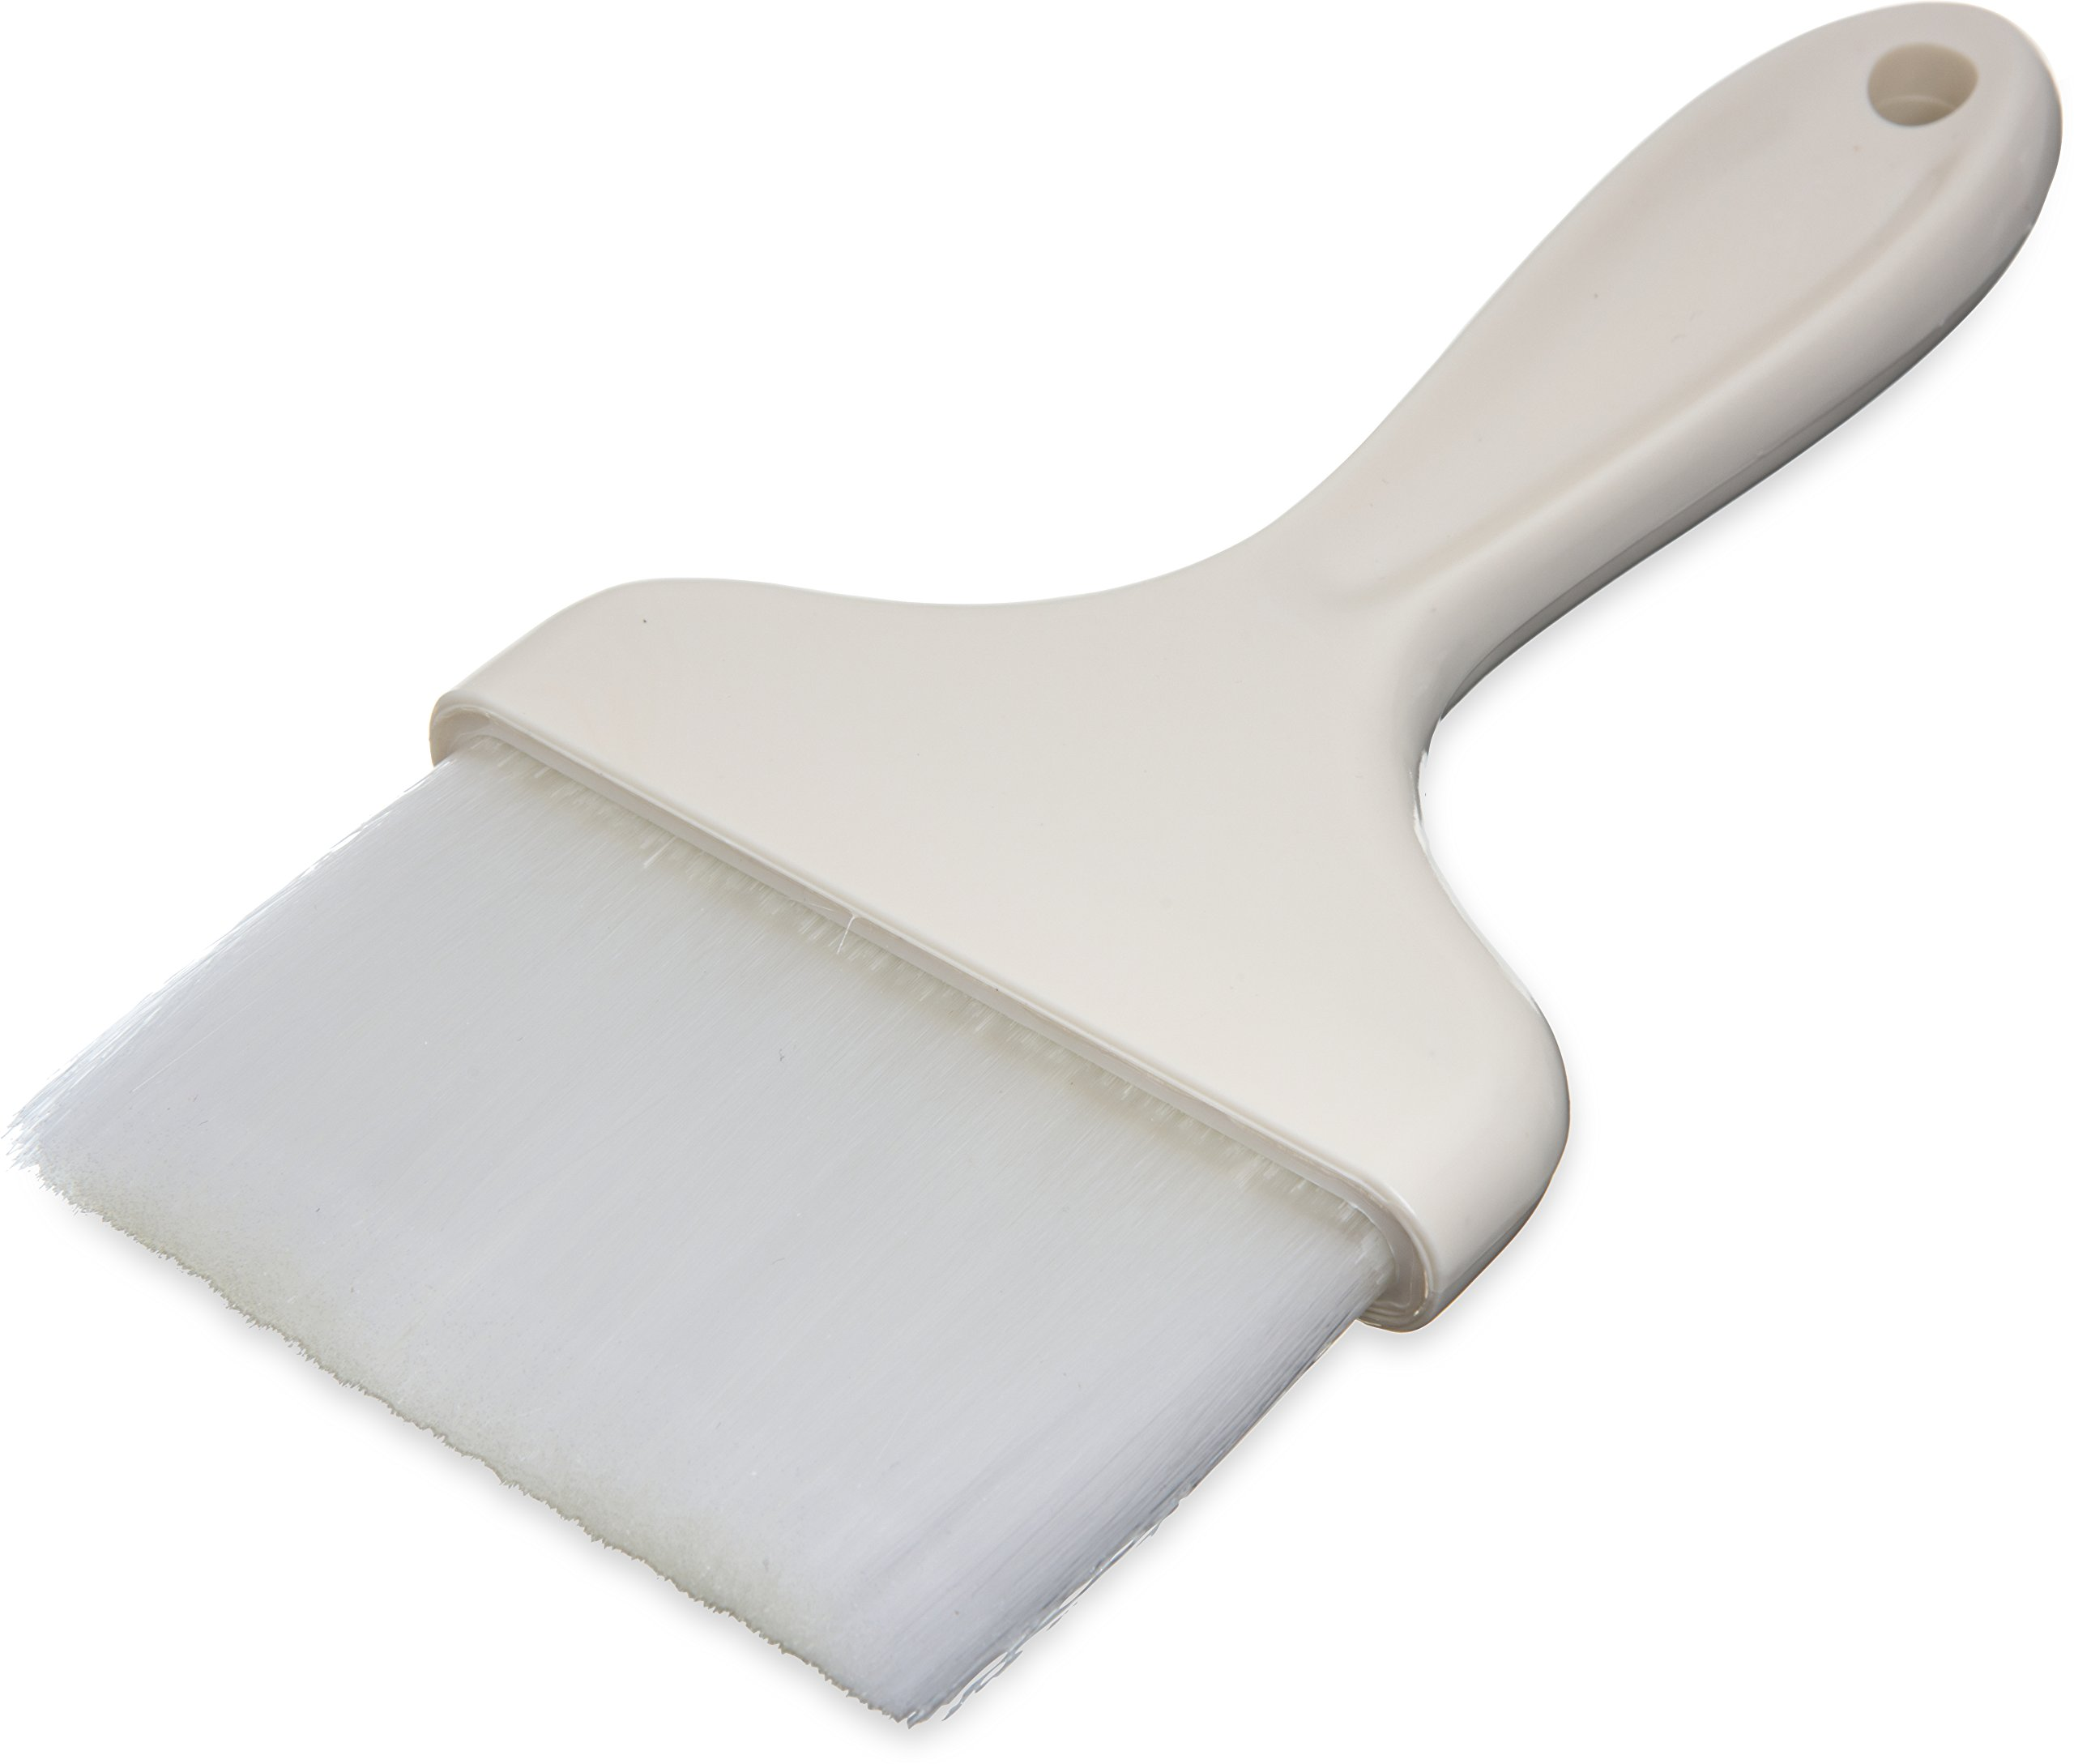 Carlisle 4039302 White 4'' Galaxy Pastry Brush with Plastic Handle (Case of 12)